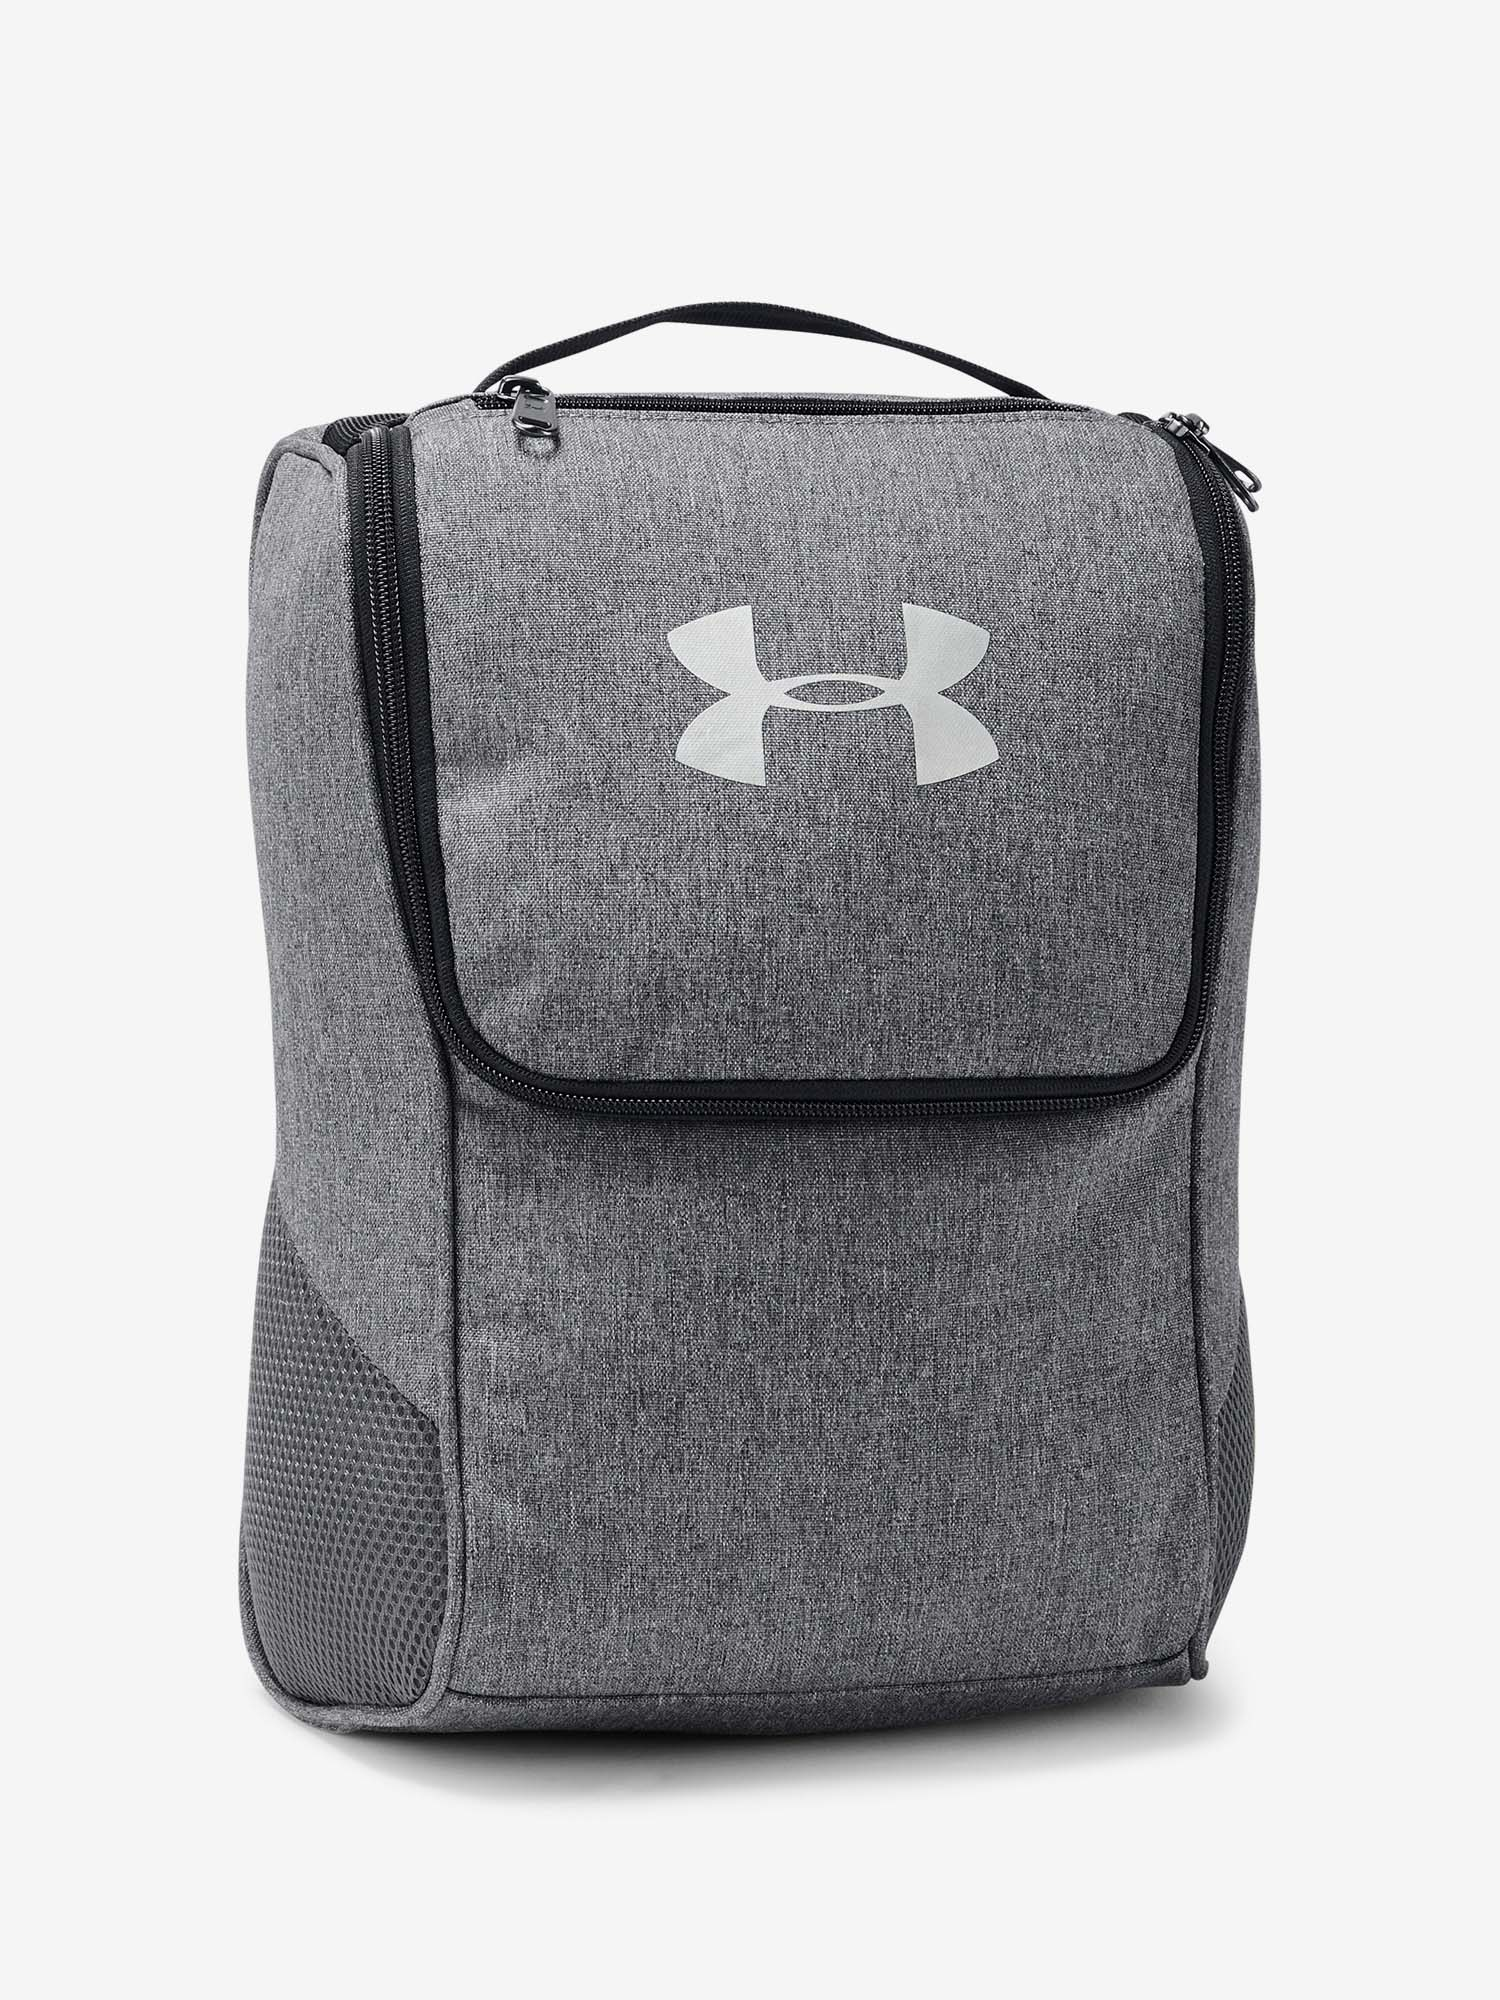 Batoh Under Armour Shoe Bag (1)